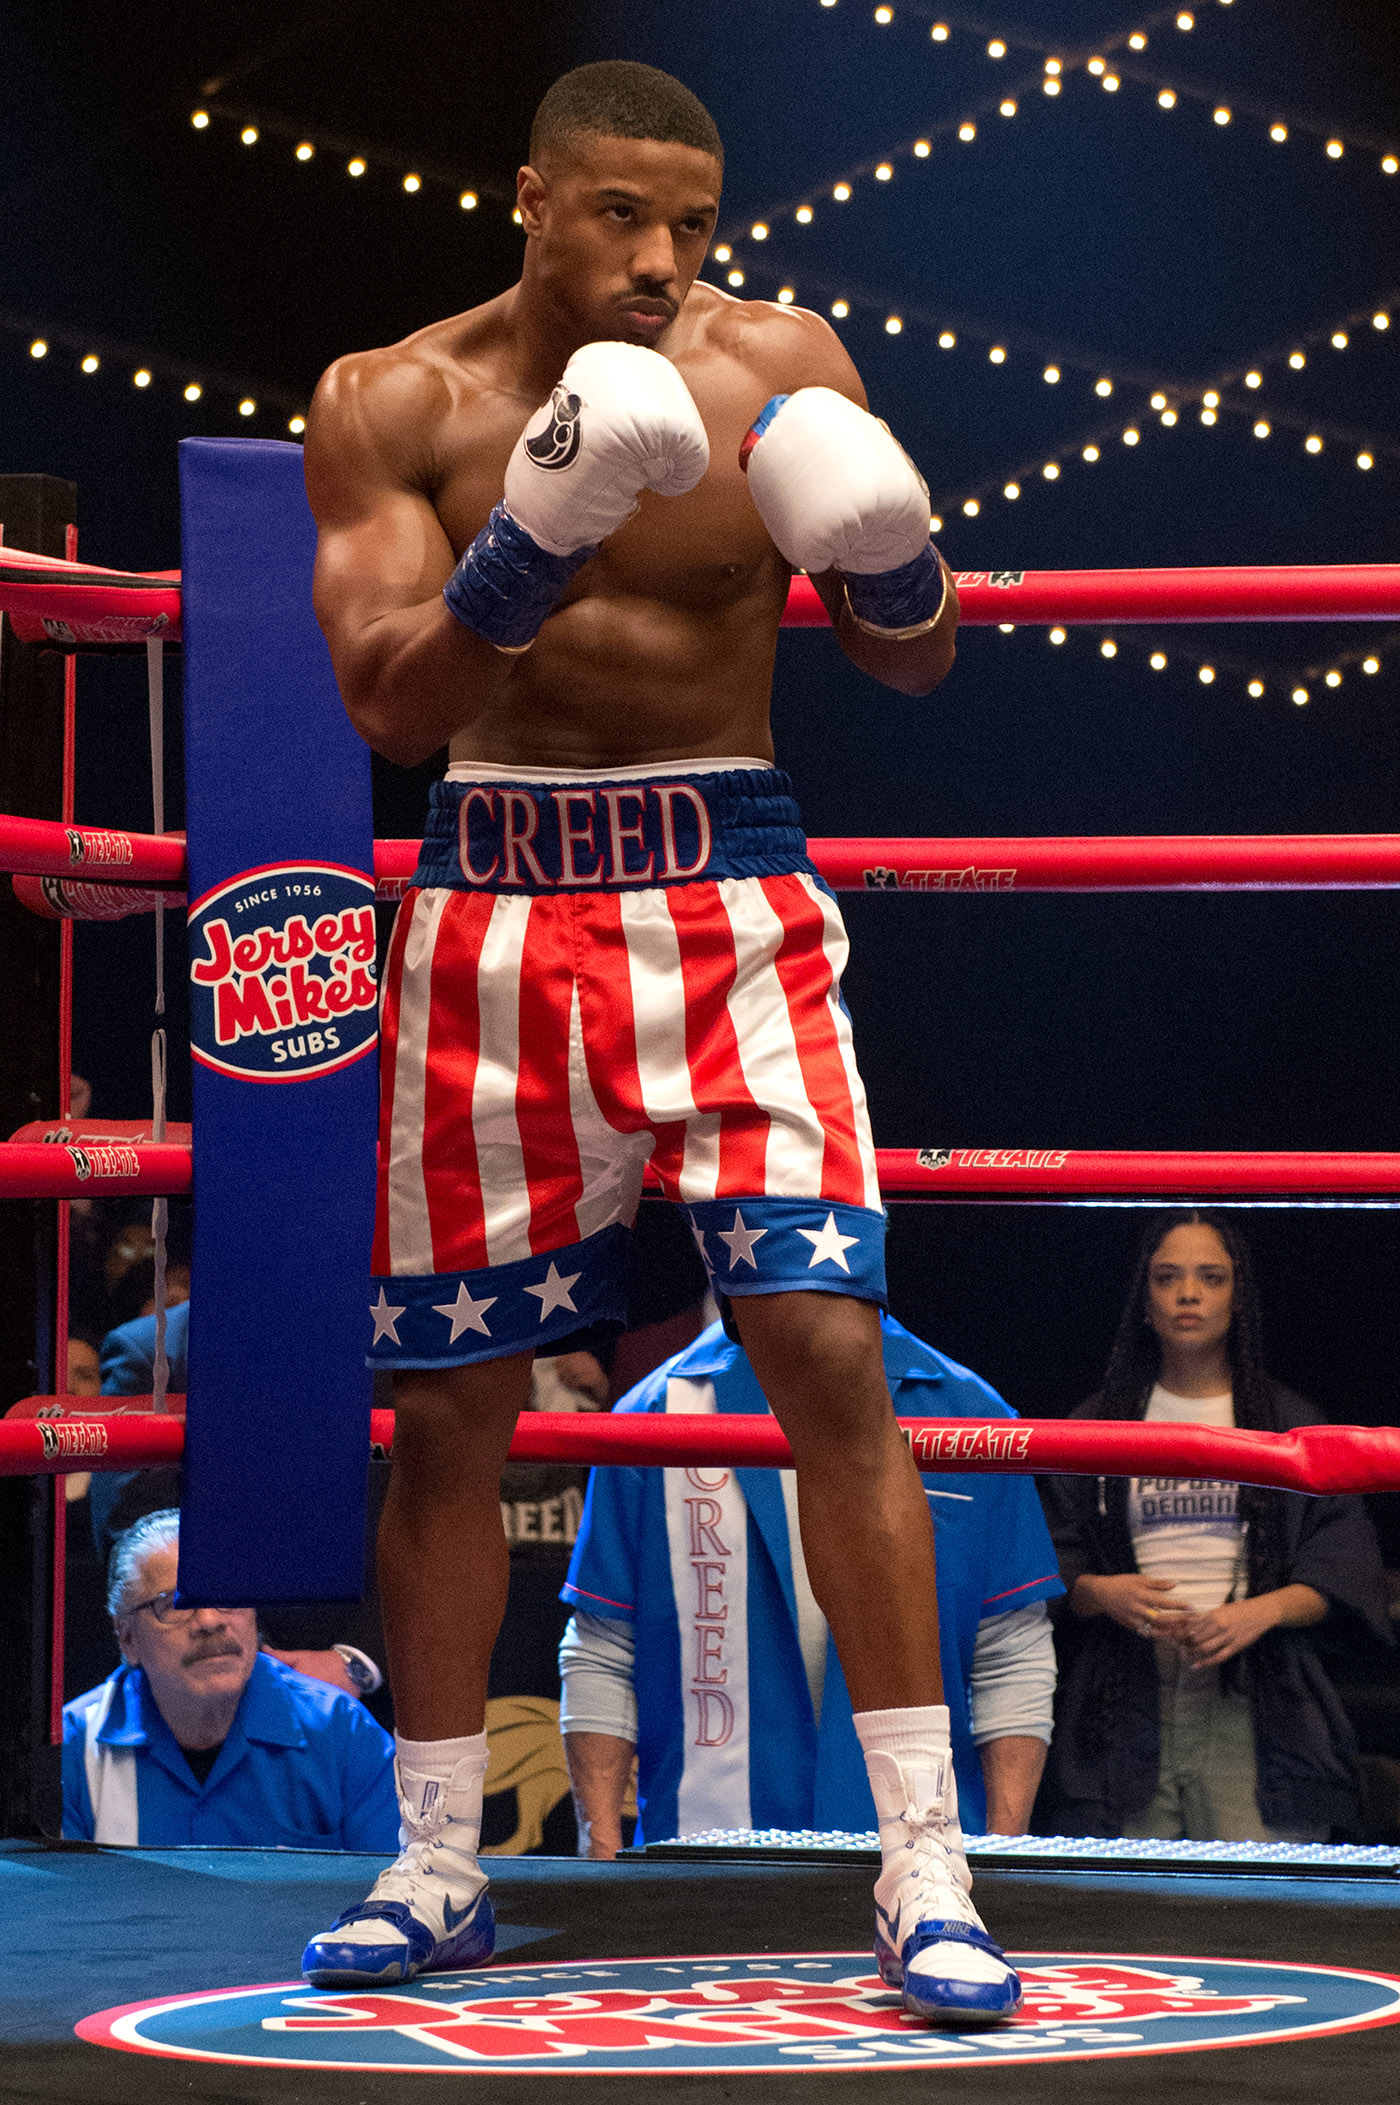 Creed 2   on fait le poing